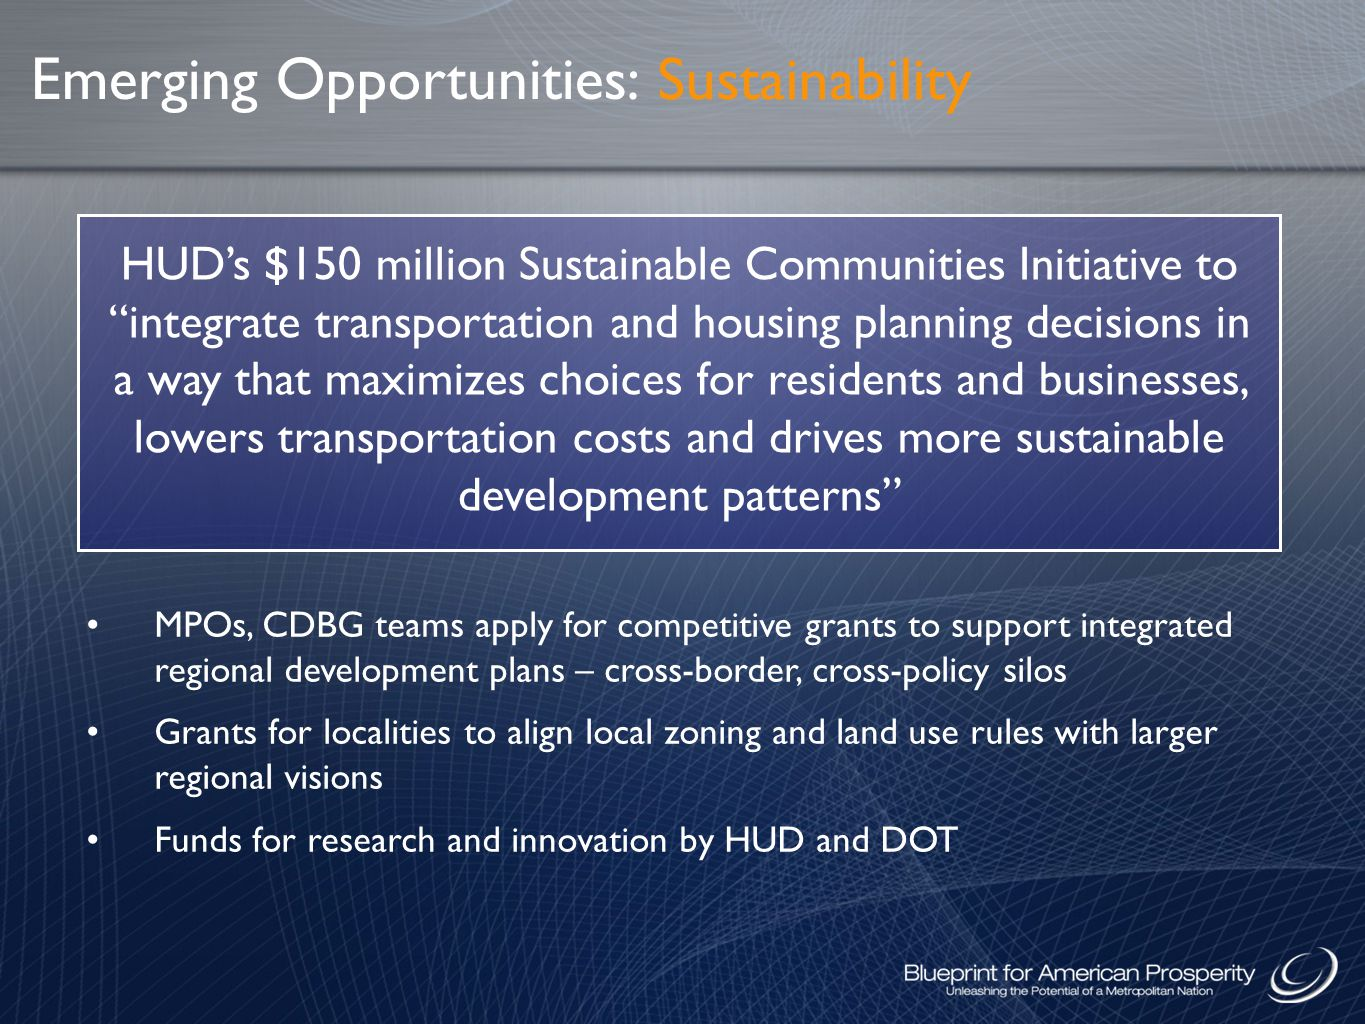 Emerging Opportunities: HUD's $150 million Sustainable Communities Initiative to integrate transportation and housing planning decisions in a way that maximizes choices for residents and businesses, lowers transportation costs and drives more sustainable development patterns MPOs, CDBG teams apply for competitive grants to support integrated regional development plans – cross-border, cross-policy silos Grants for localities to align local zoning and land use rules with larger regional visions Funds for research and innovation by HUD and DOT Sustainability